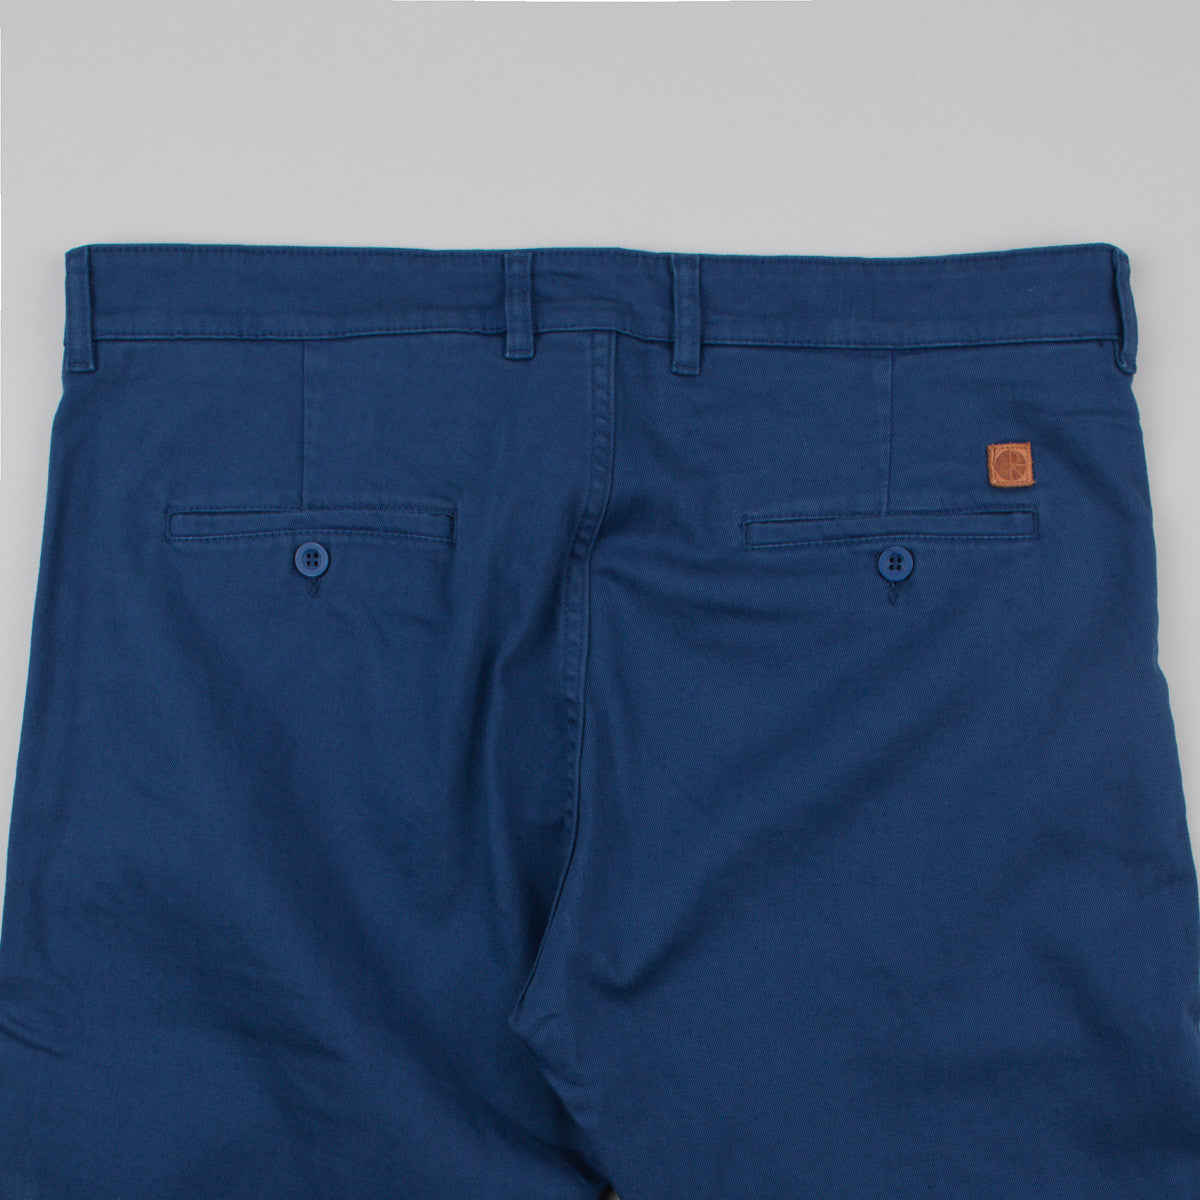 Polar Chino Trousers - Dirty Blue